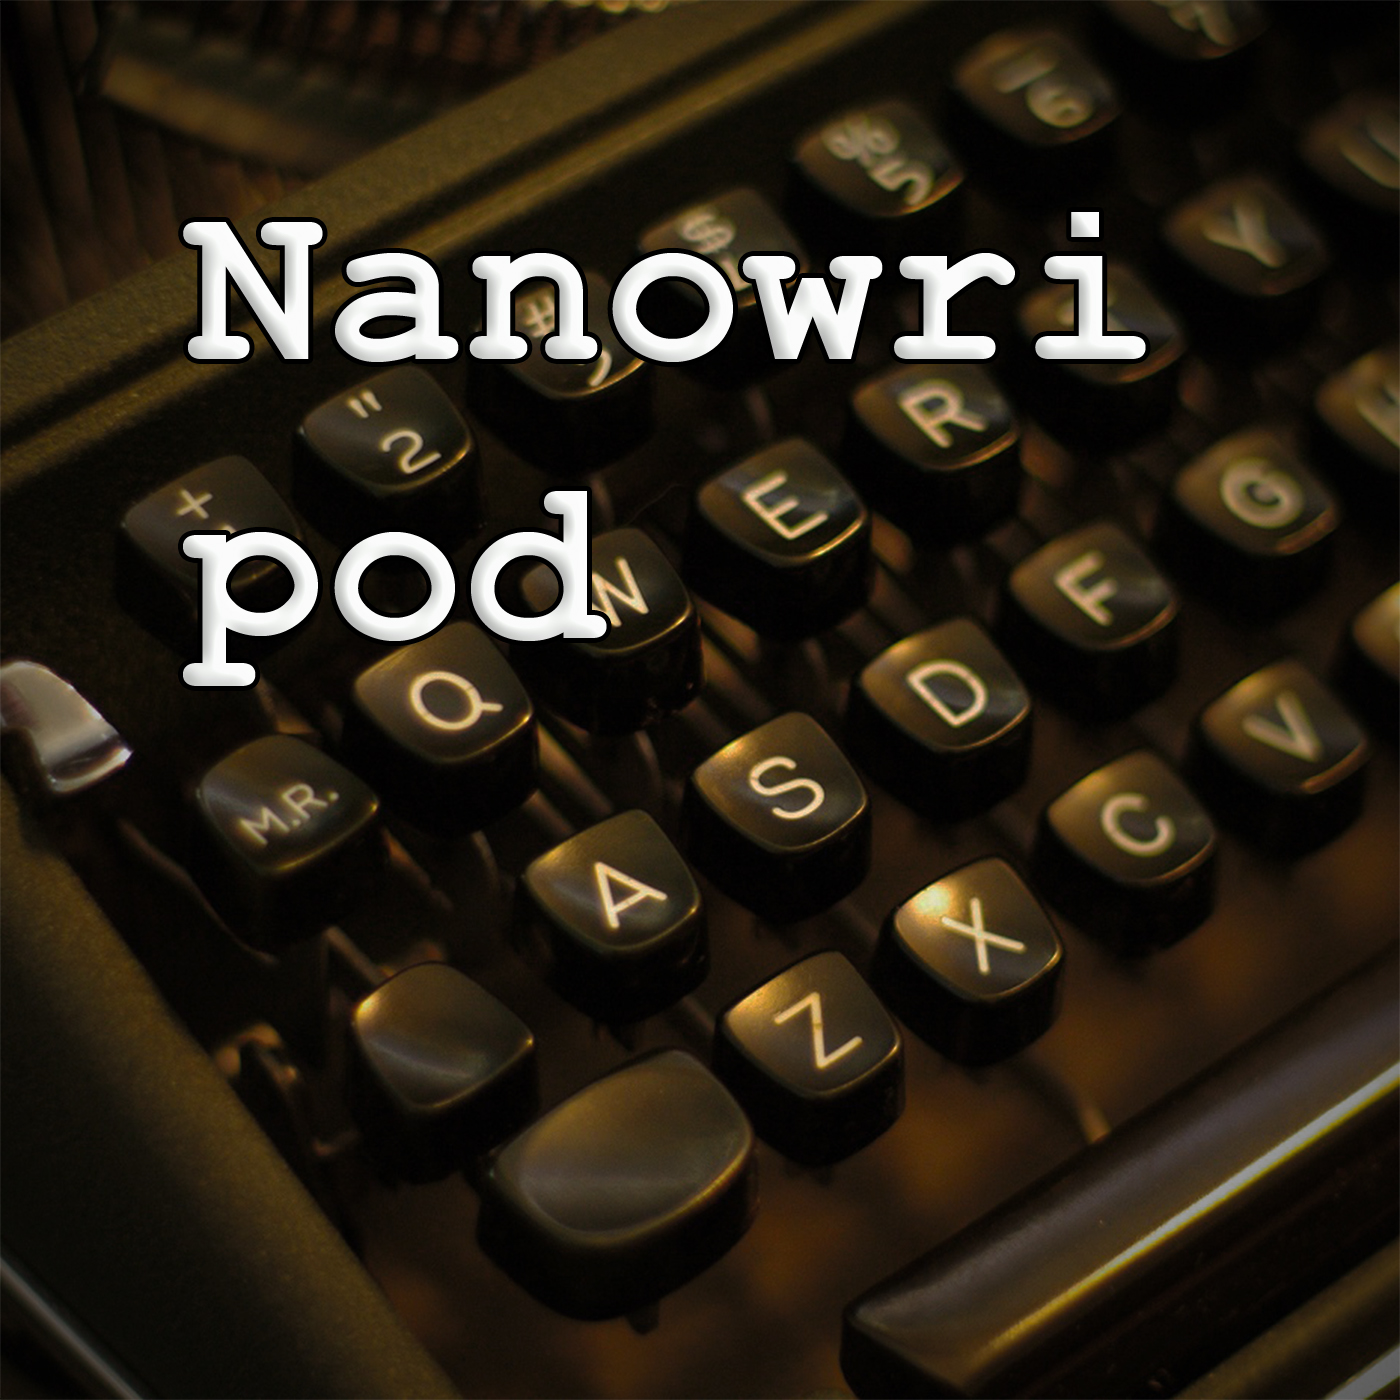 NaNoWriPod - Nanowrimo / writing / creativity / process - Black Rectangle